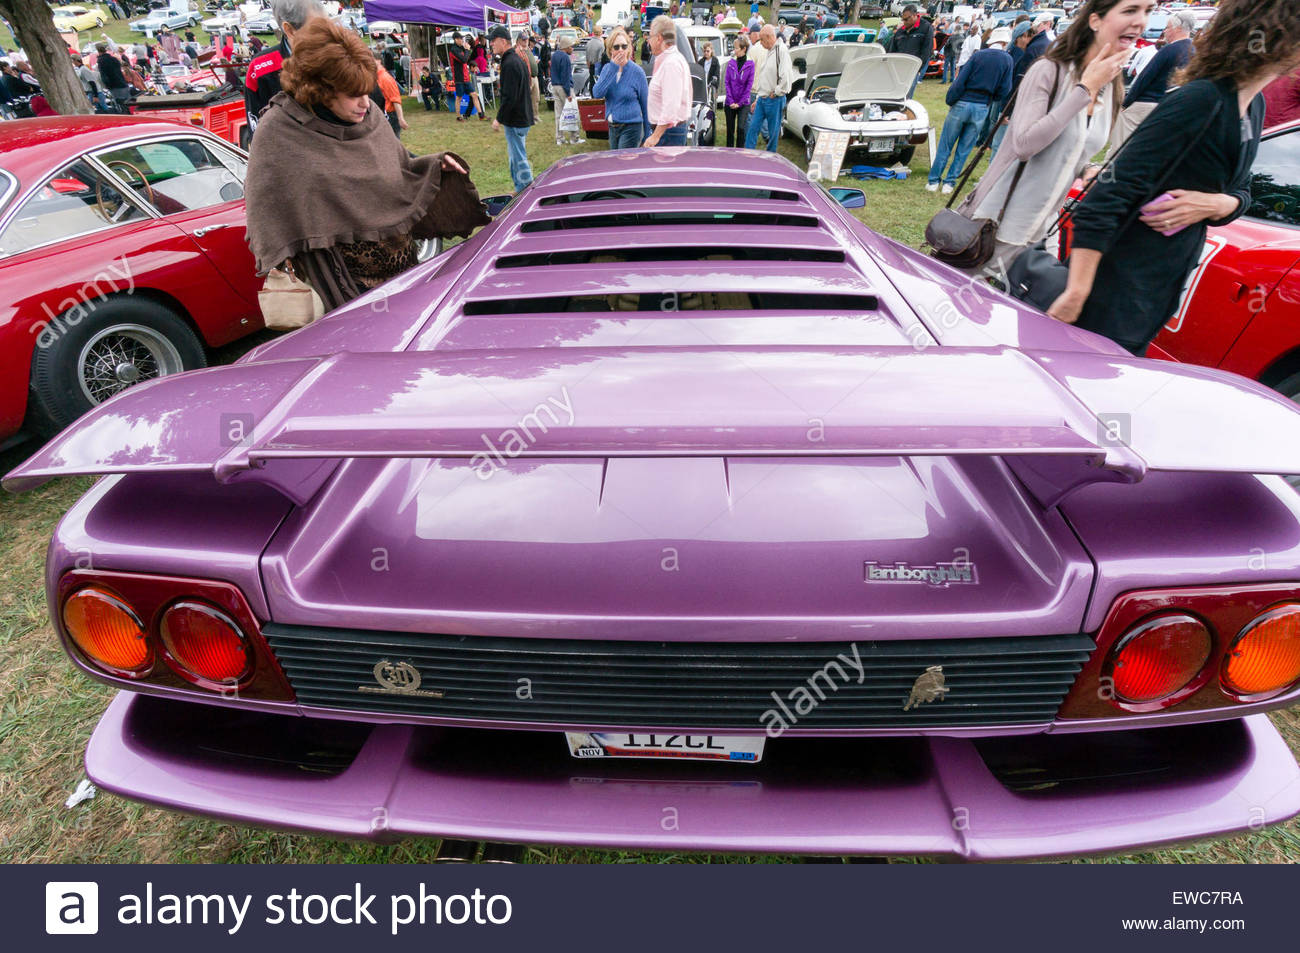 Lamborghini Diablo 30 at the 2014 Rockville Antique & Clic Car ... on purple nissan gt-r 2014, purple dodge durango 2014, purple volkswagen beetle 2014, purple corvette 2014, purple bugatti veyron 2014, purple dodge challenger 2014, purple lotus elise 2014,